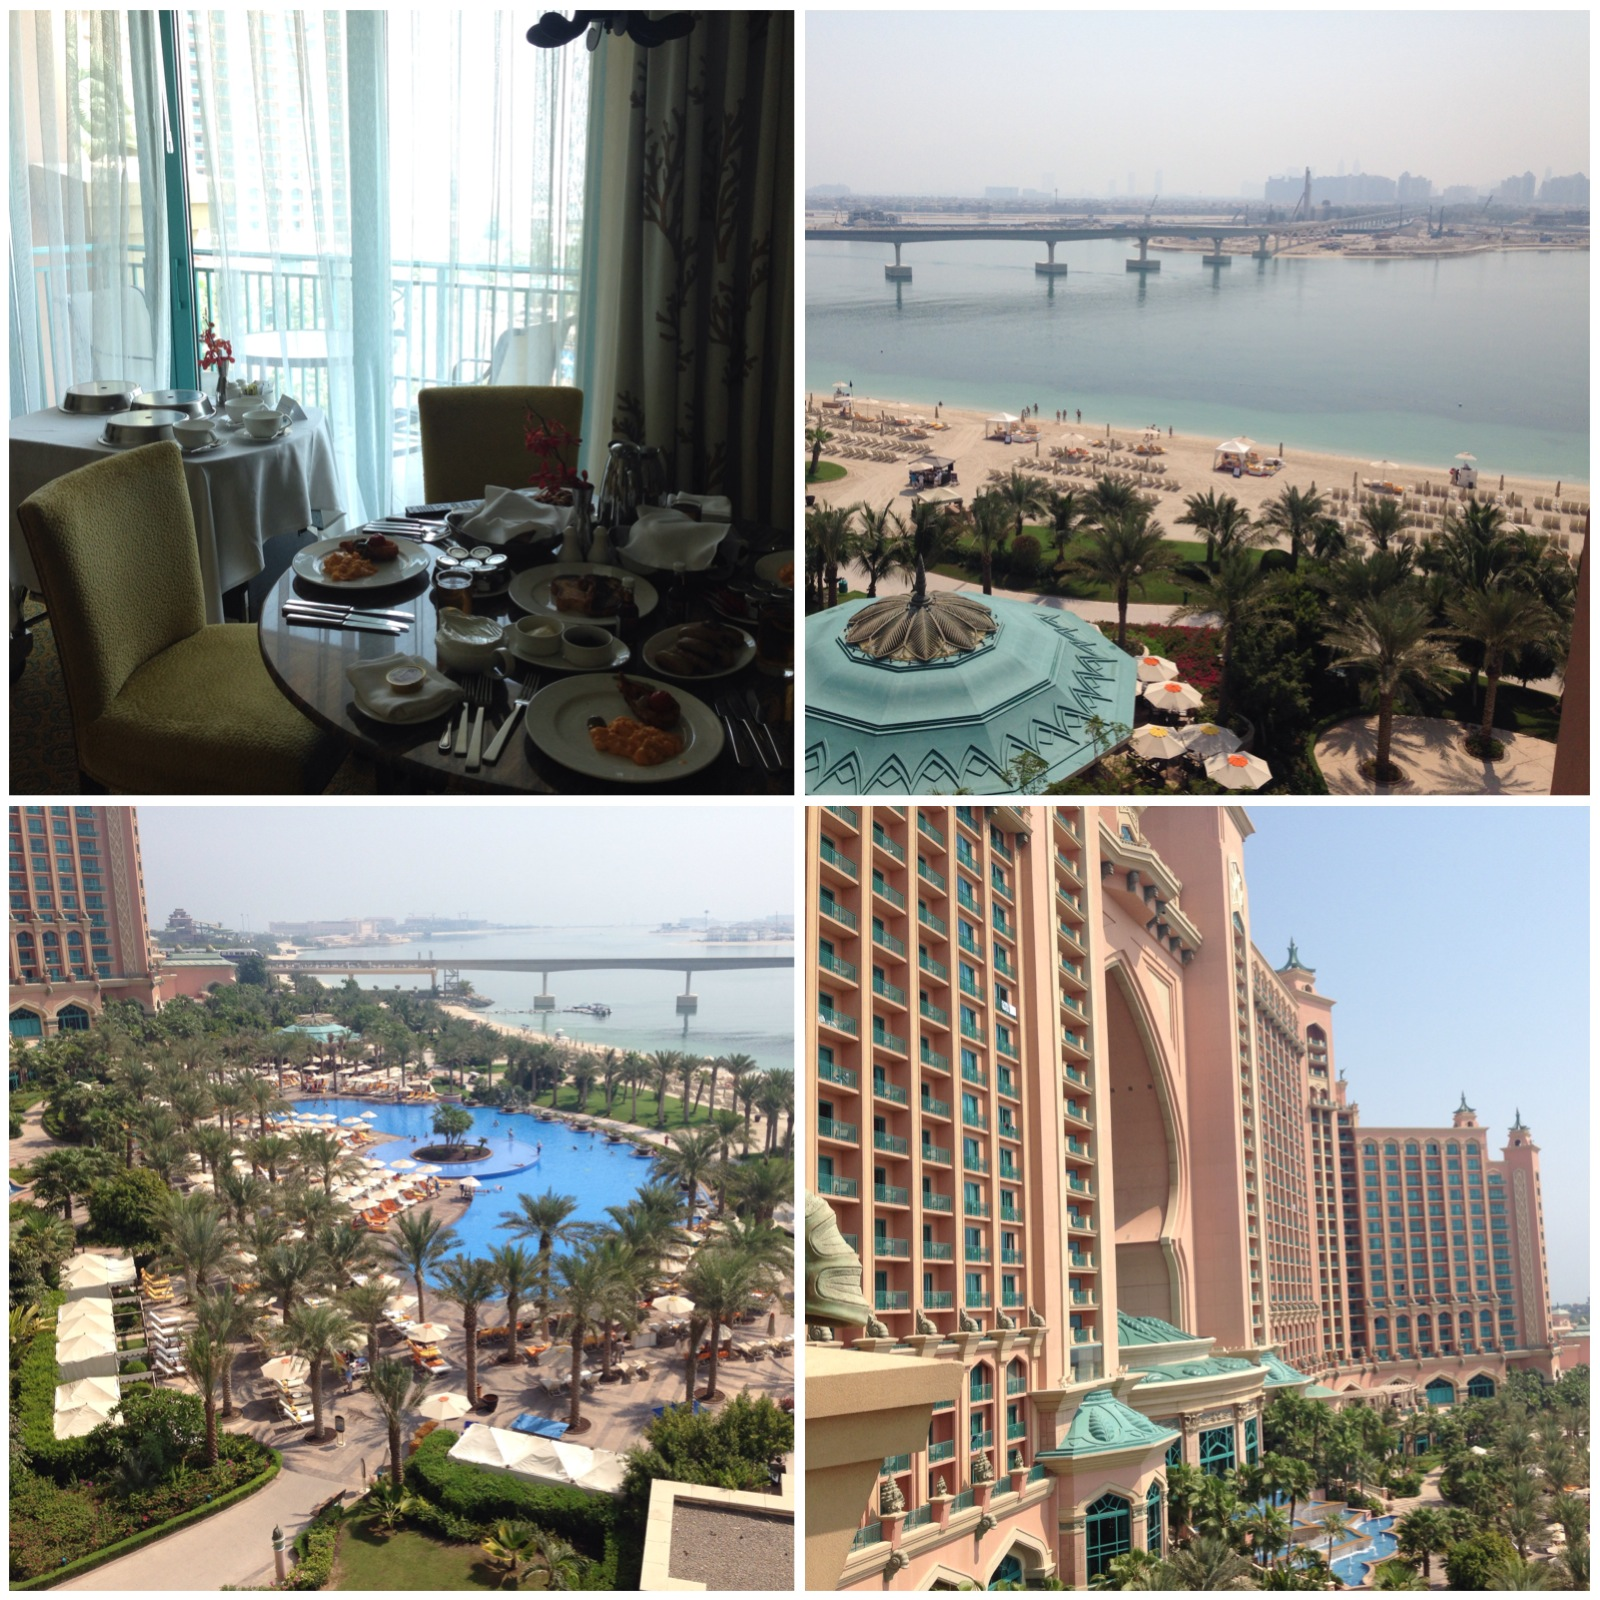 Dubai Diaries: Day 3